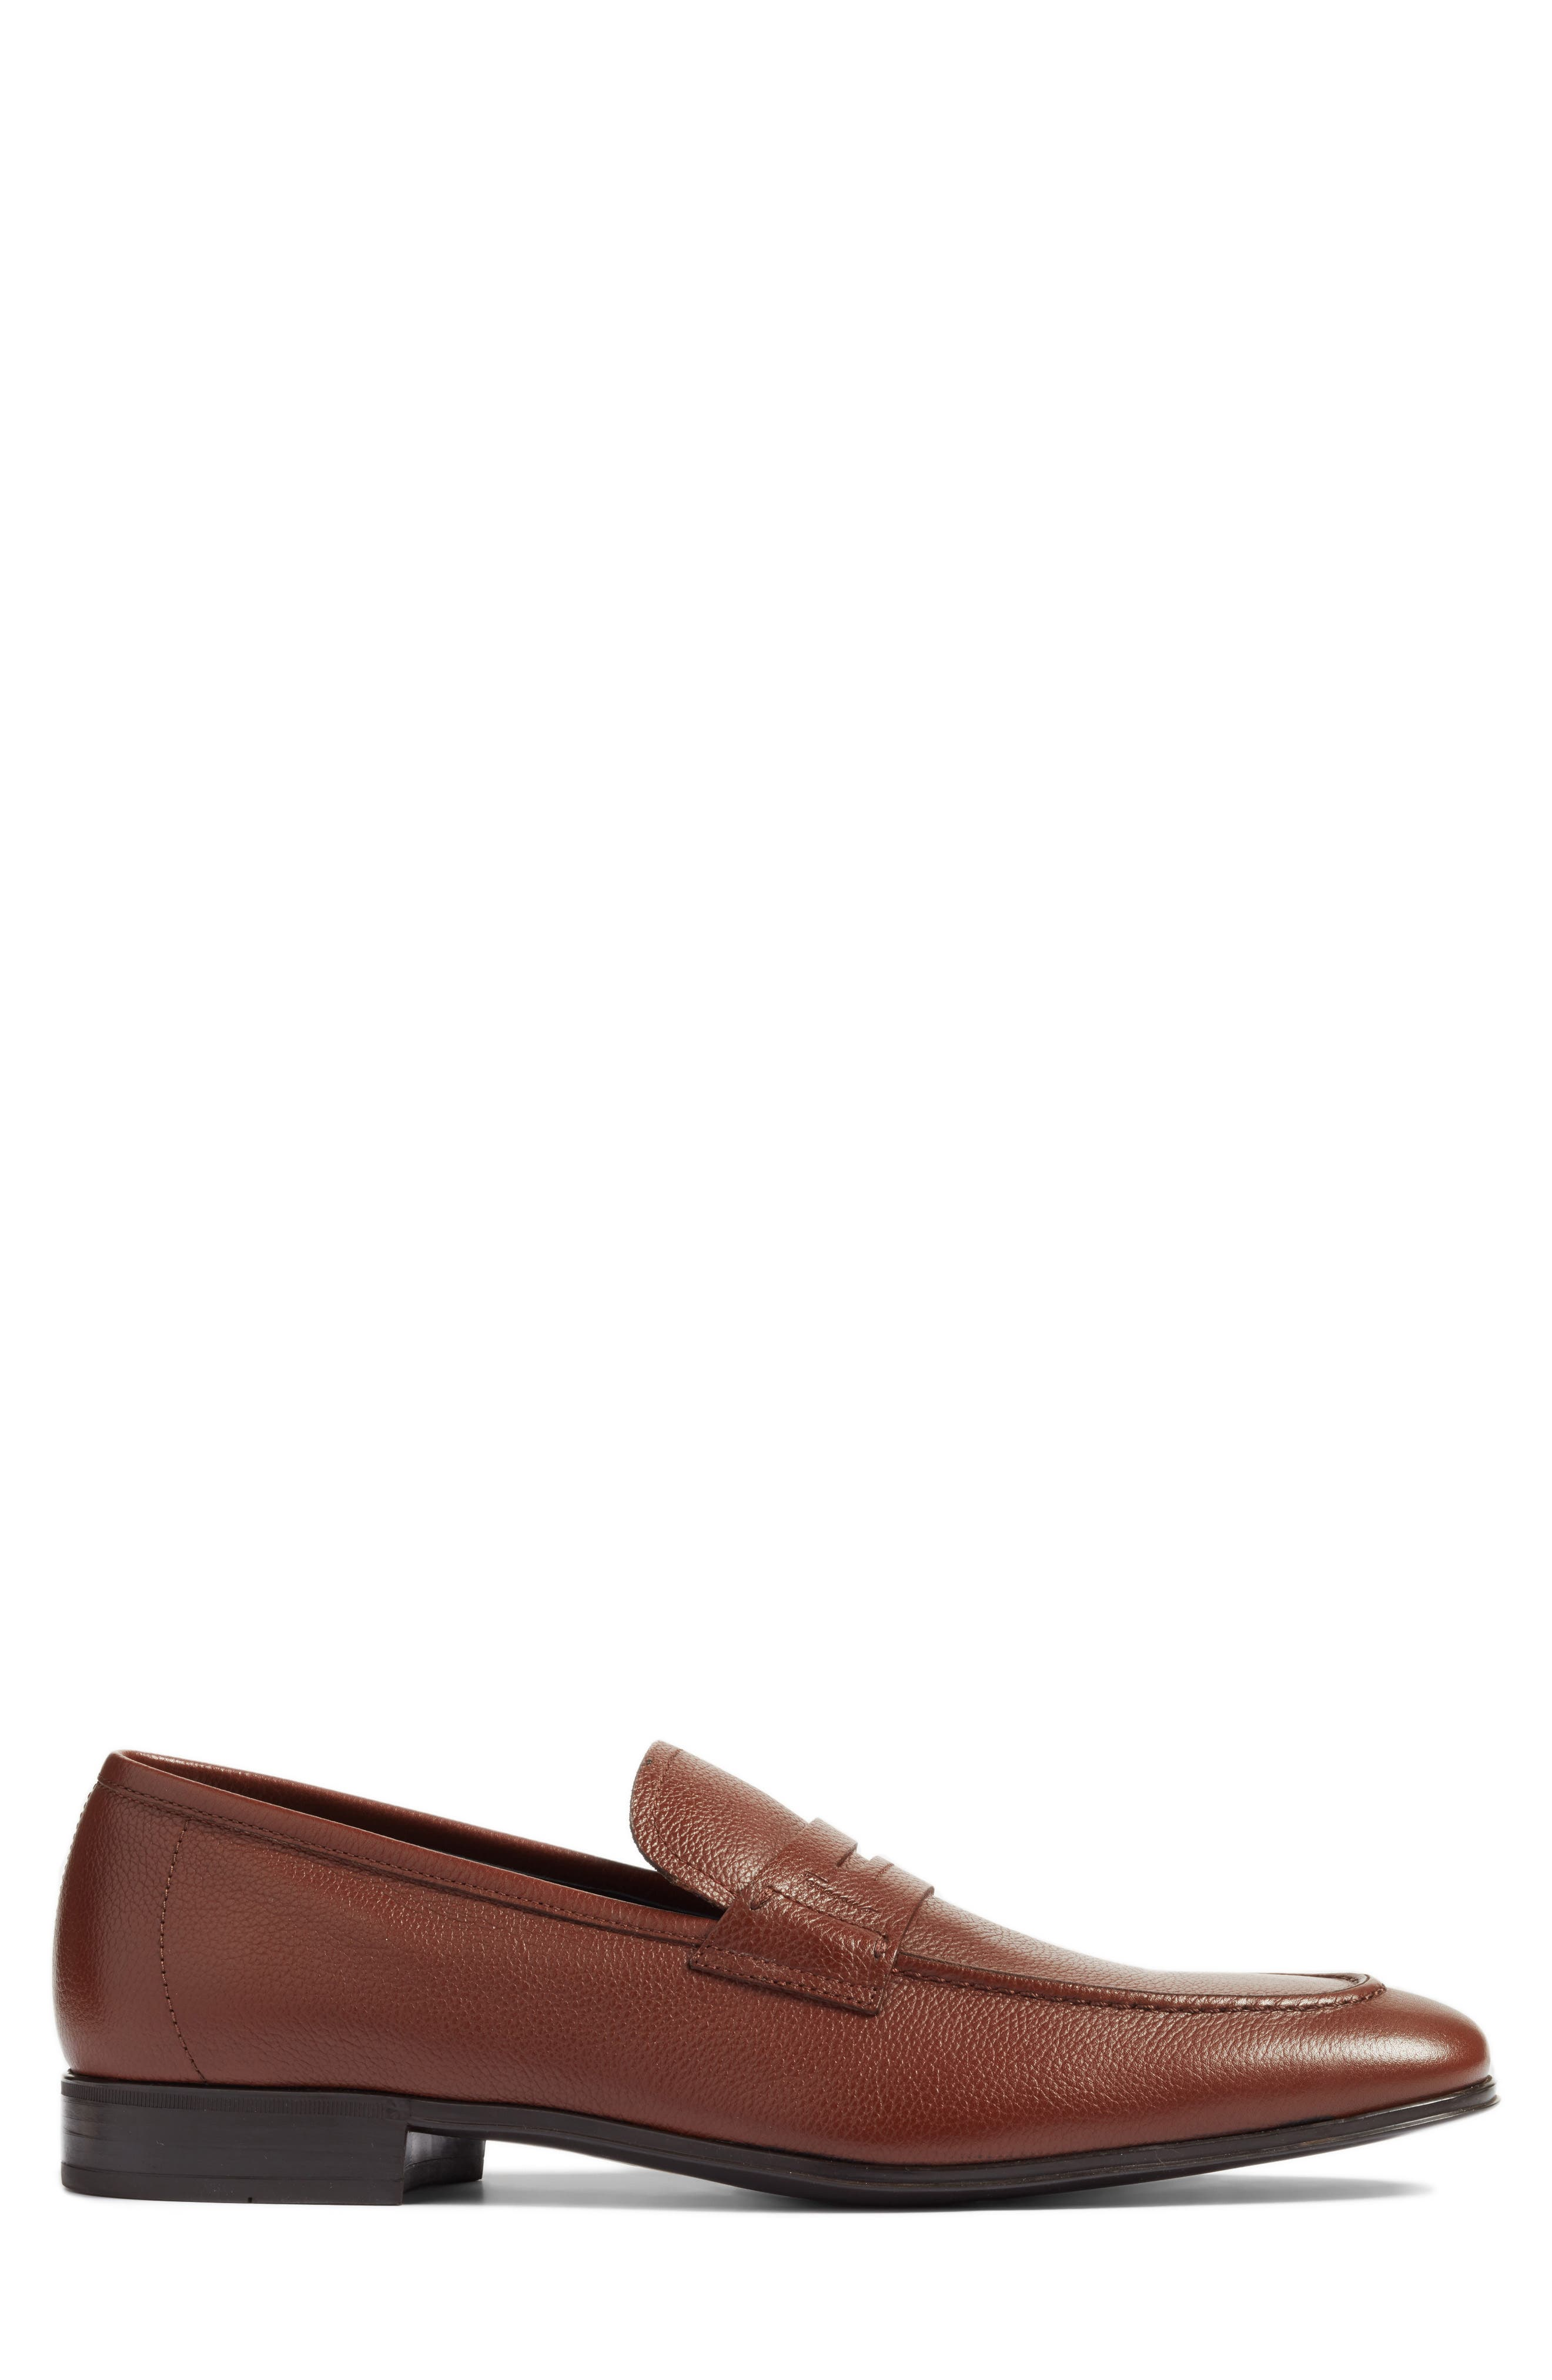 Fiorino 2 Penny Loafer,                             Alternate thumbnail 3, color,                             Dark Cuoio Leather